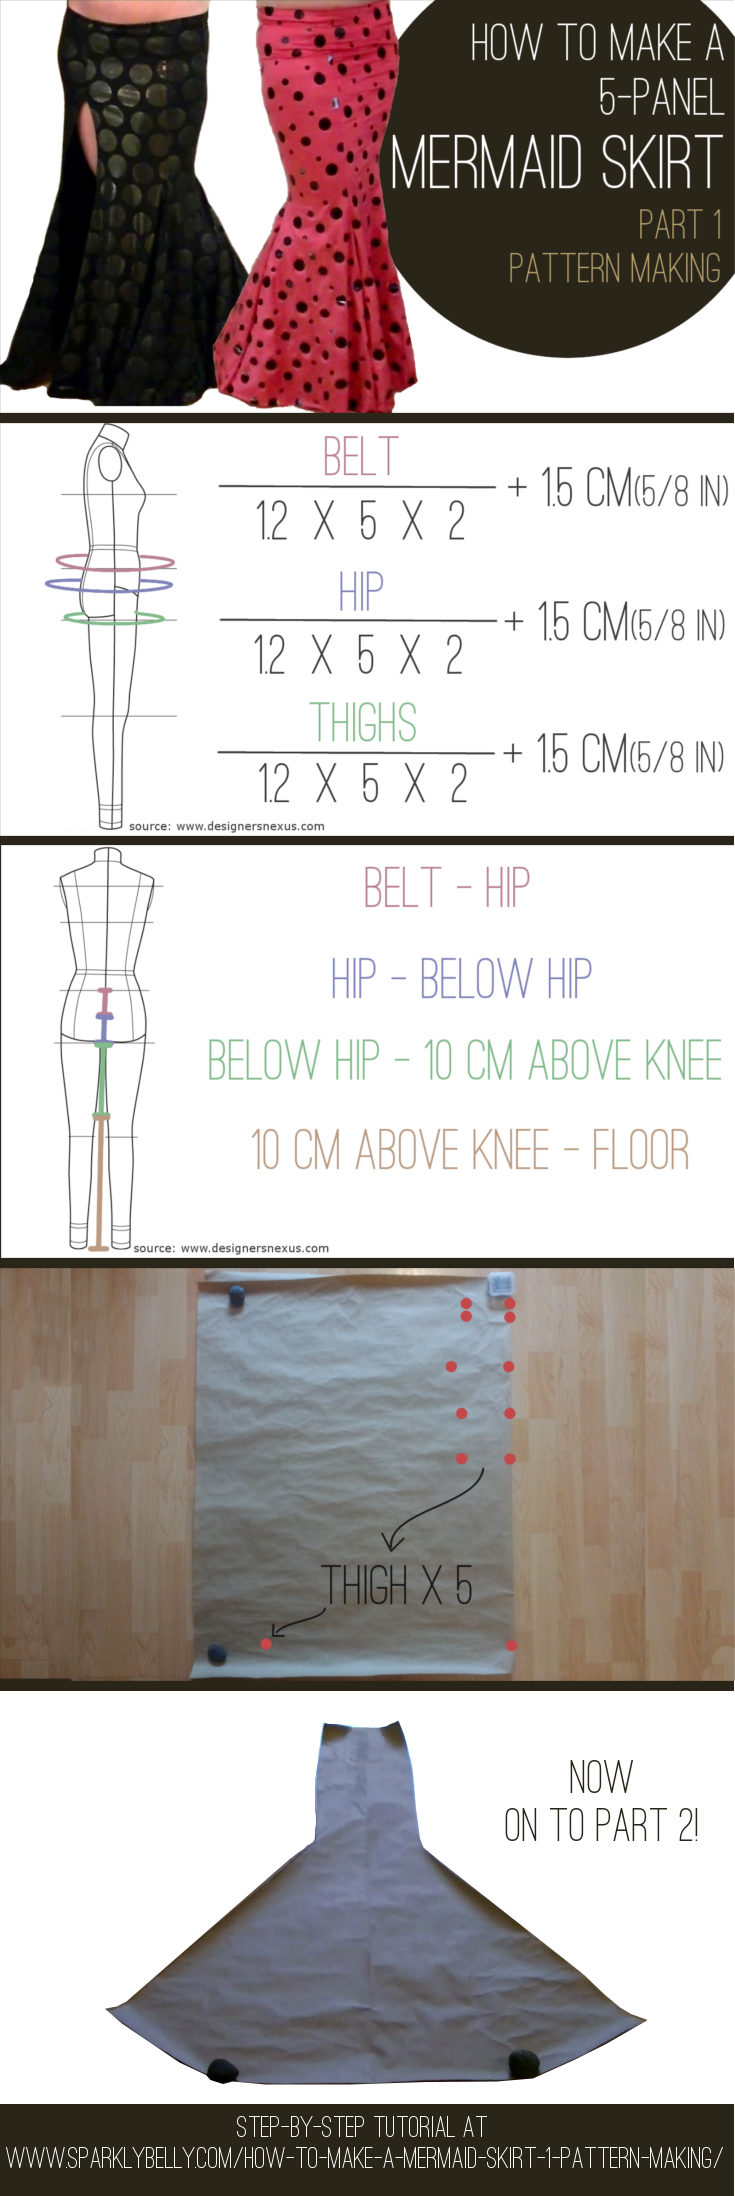 How to Make a Mermaid Skirt Part 1: Pattern Making - SPARKLY BELLY ...